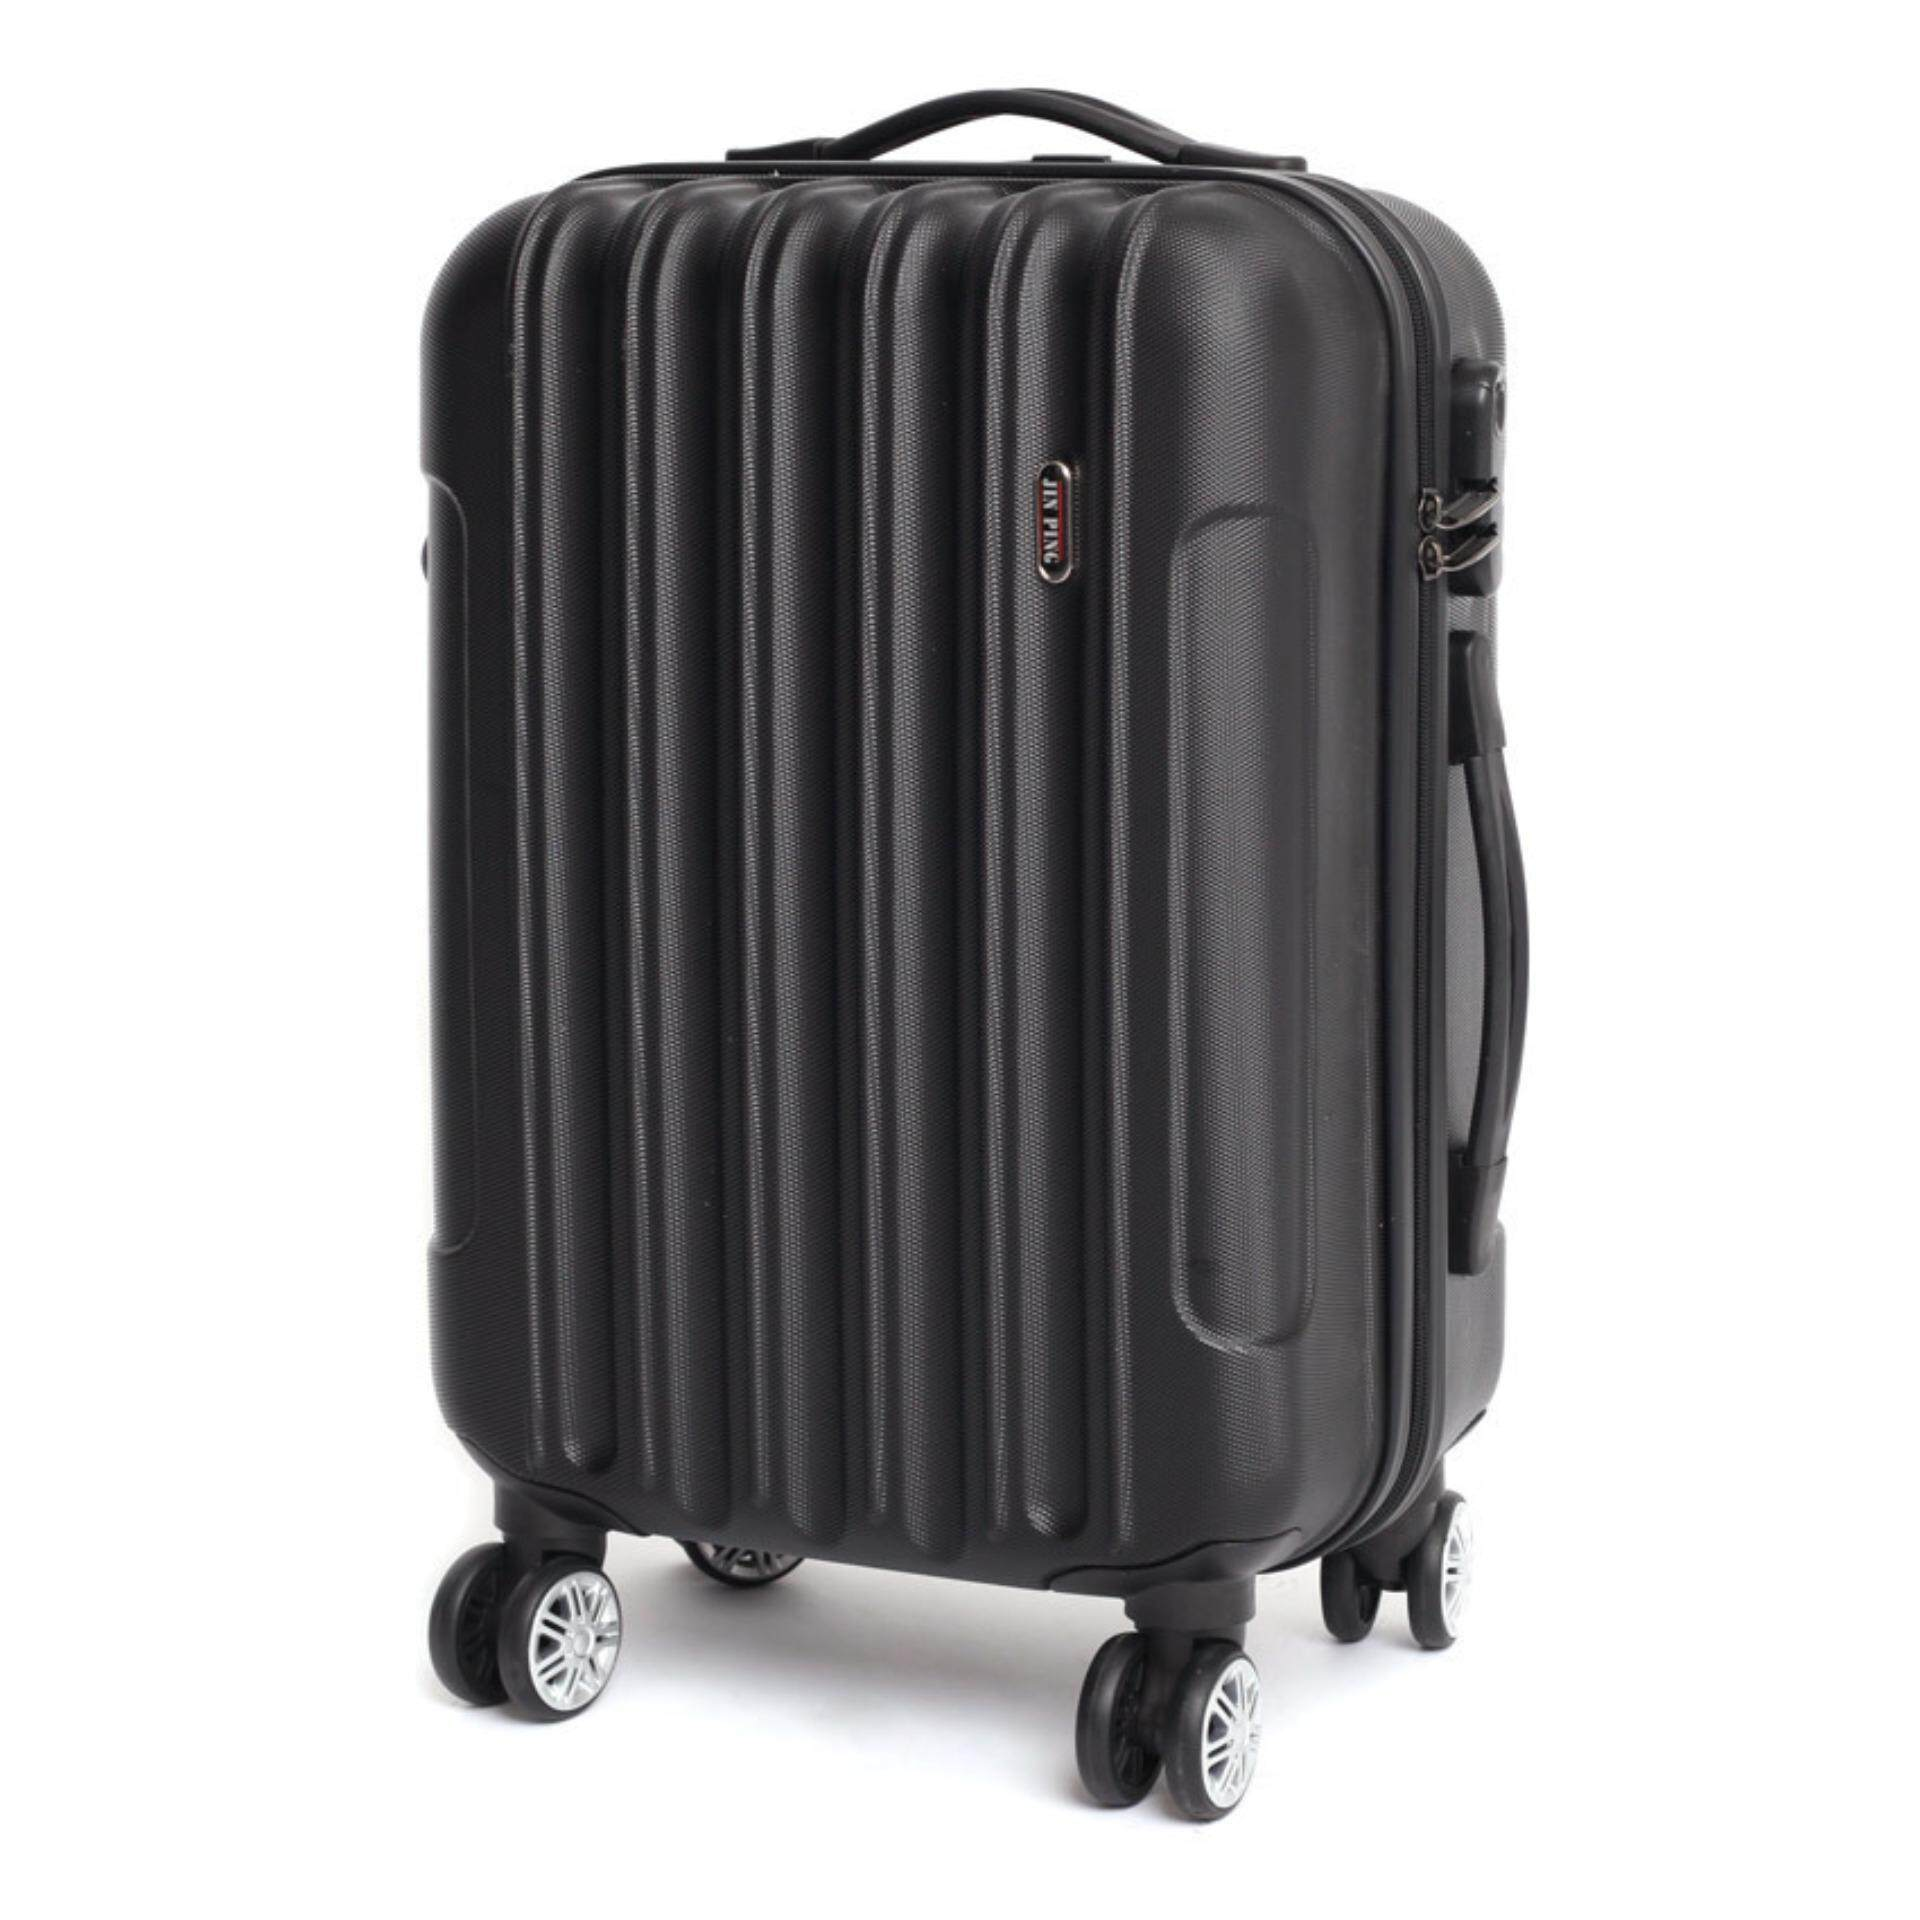 Voyage Hard Case ABS Luggage Bagasi- 20 Inches (Black)